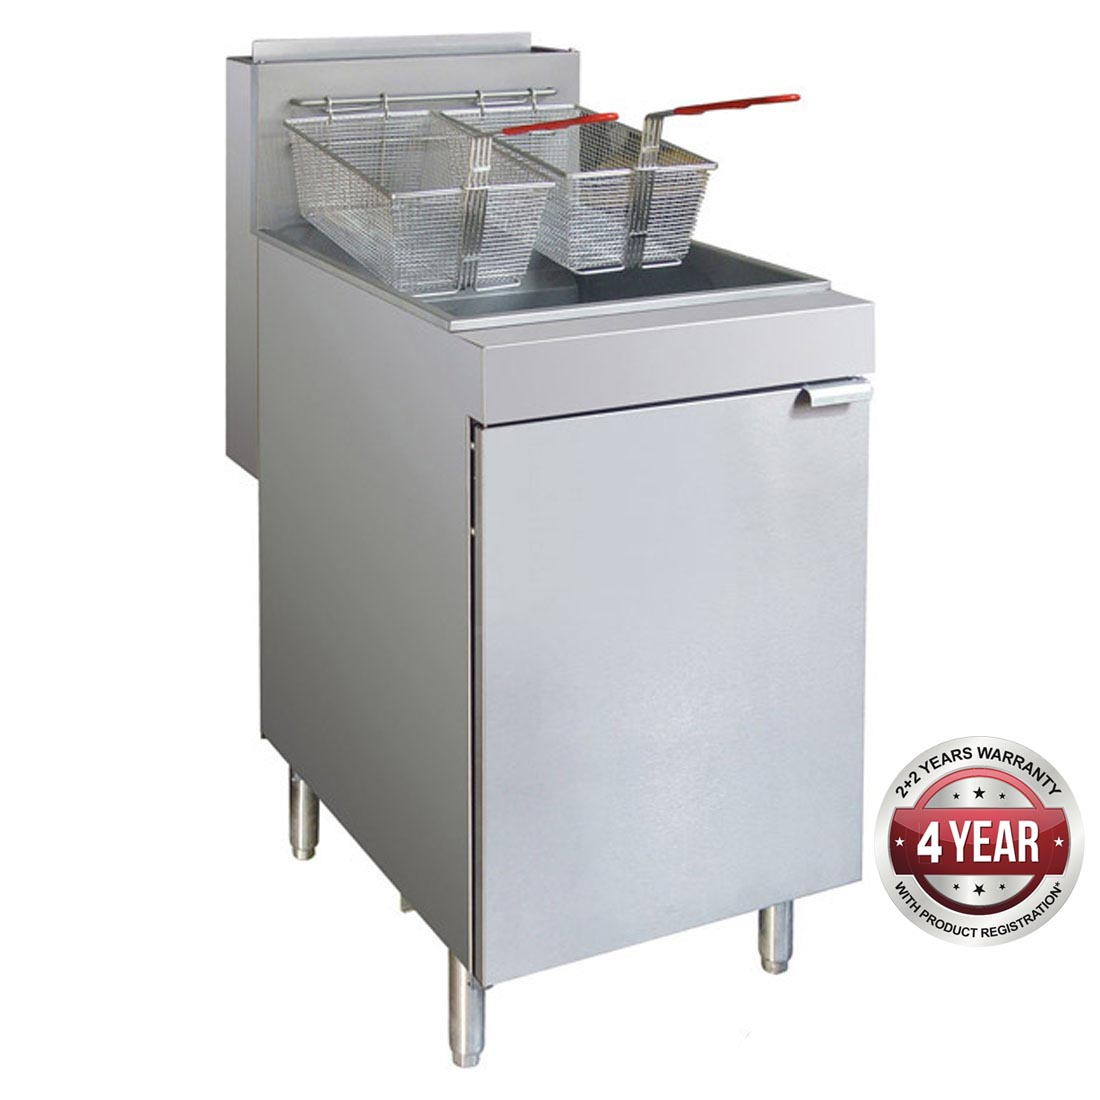 RC300ELPG - Superfast LPG Gas Tube Fryer